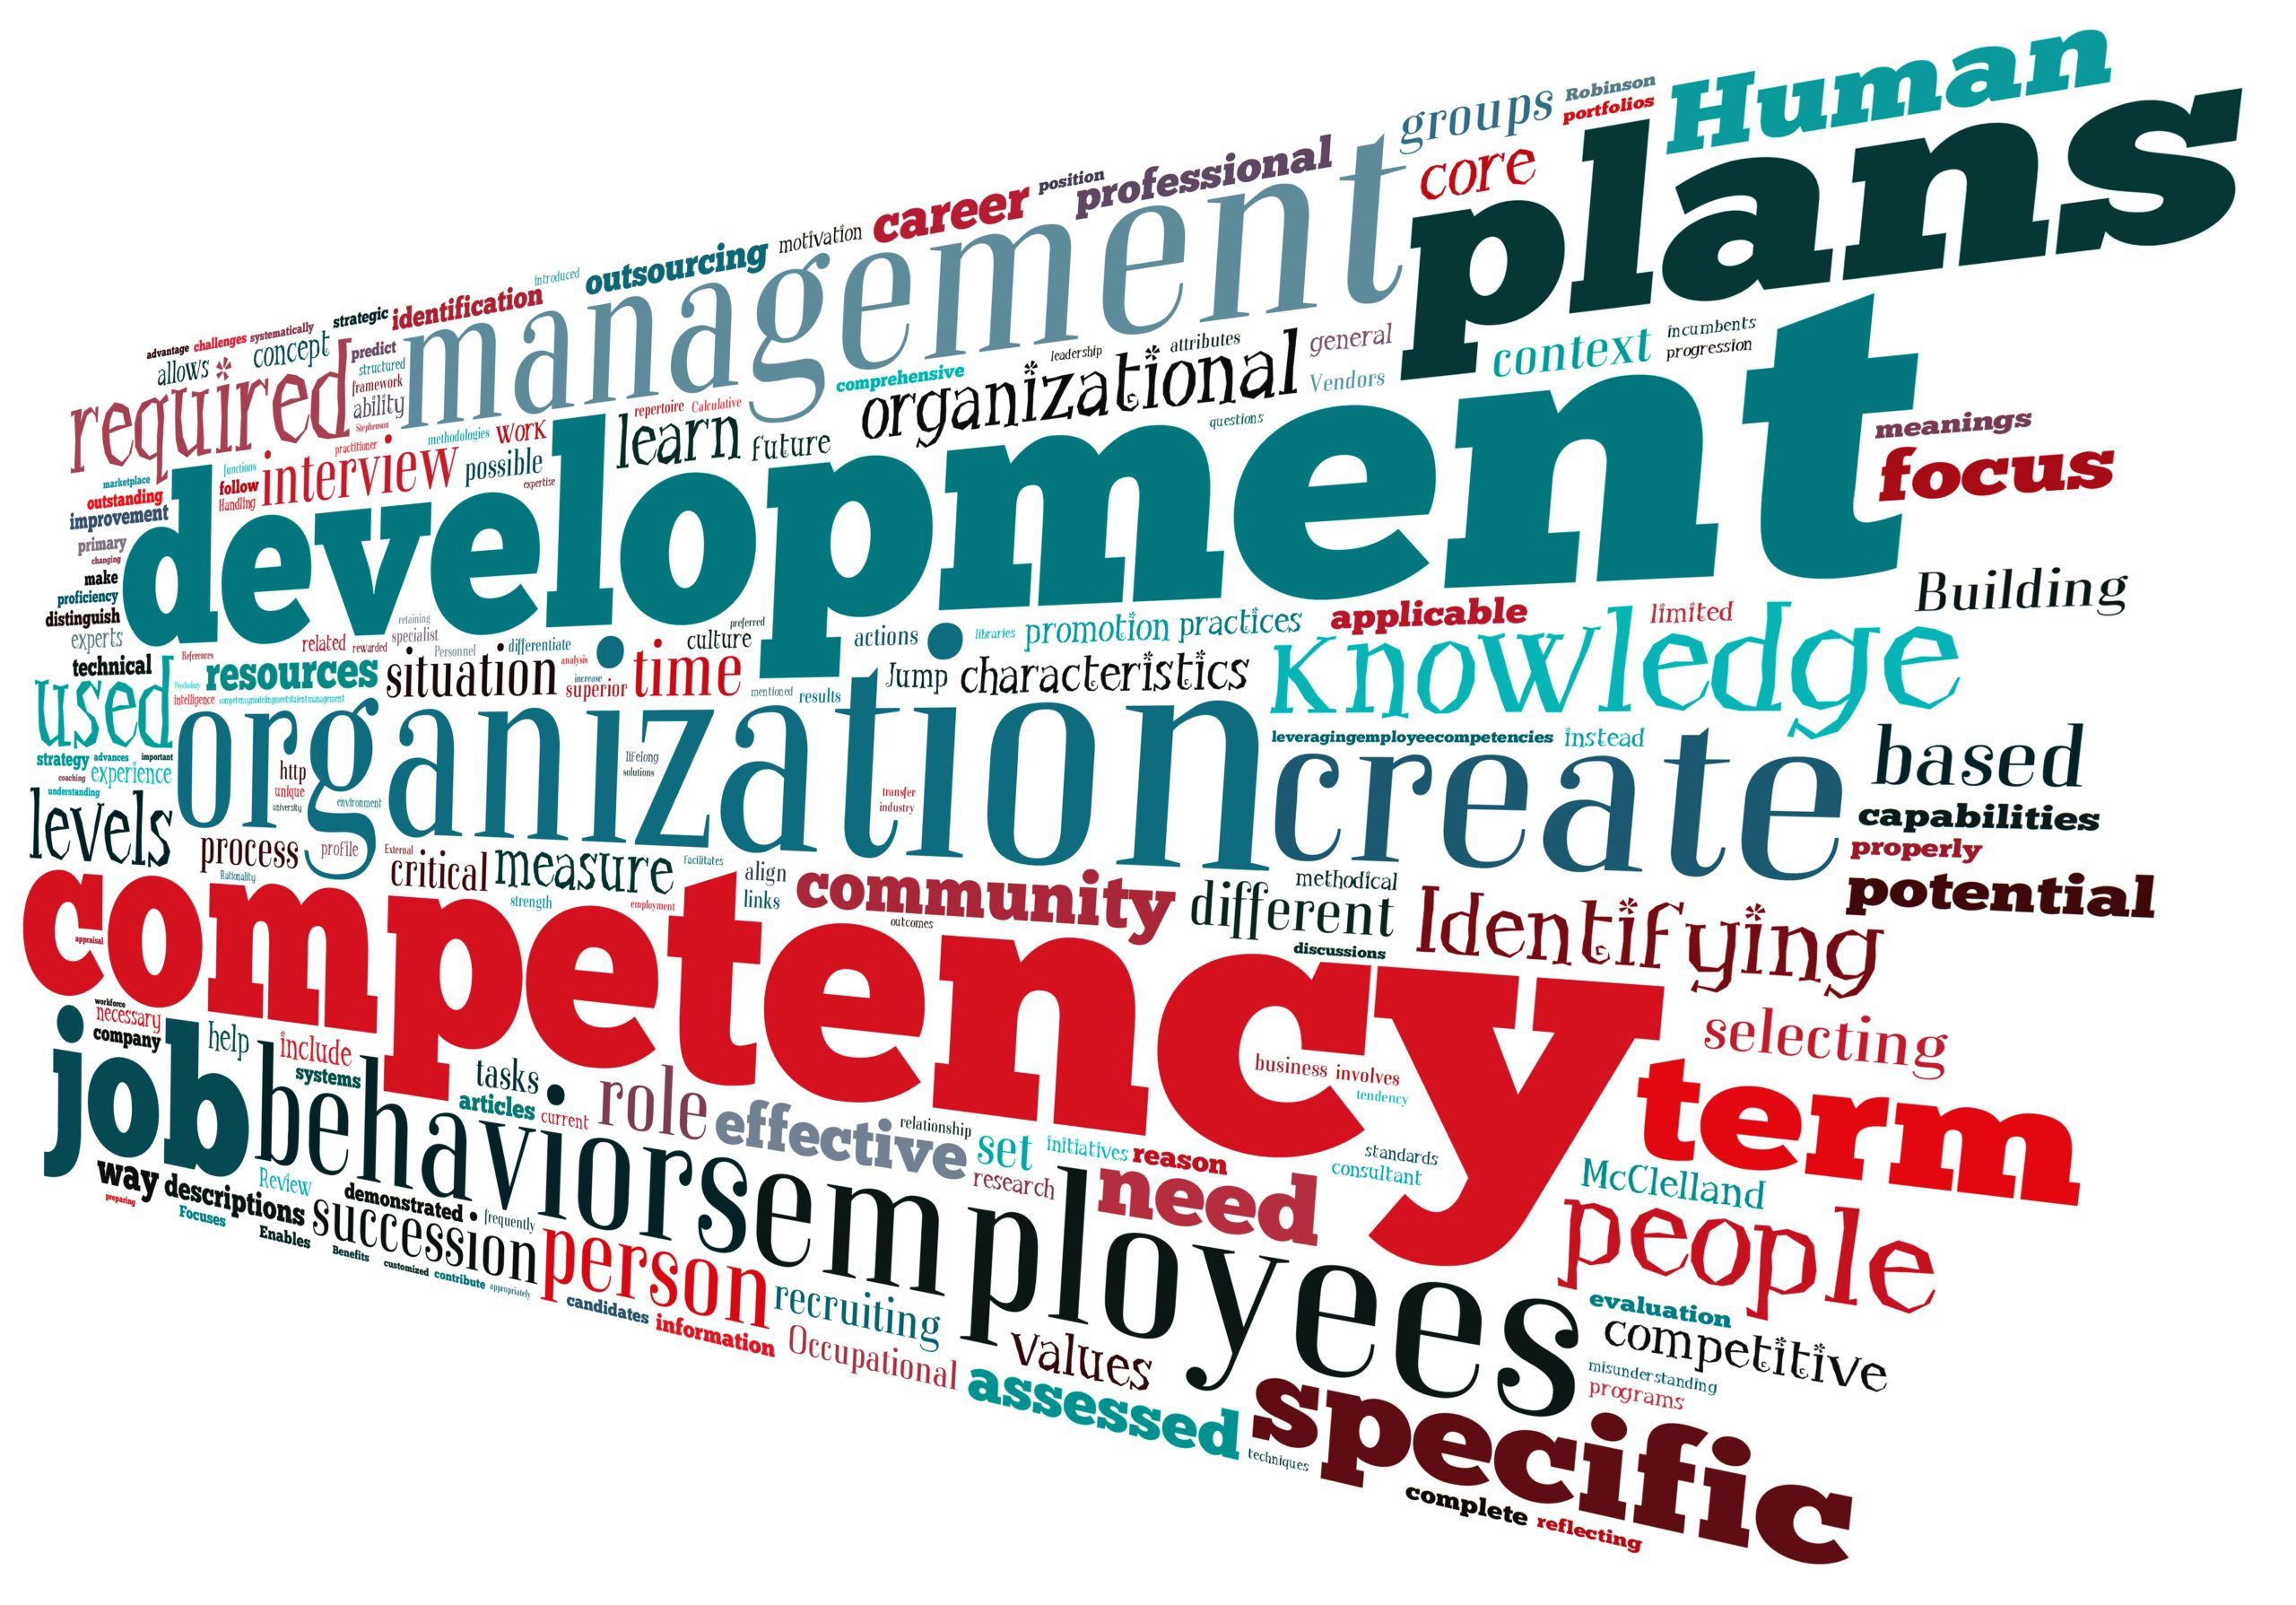 Processes around Competency Based (CBE) Module Creation